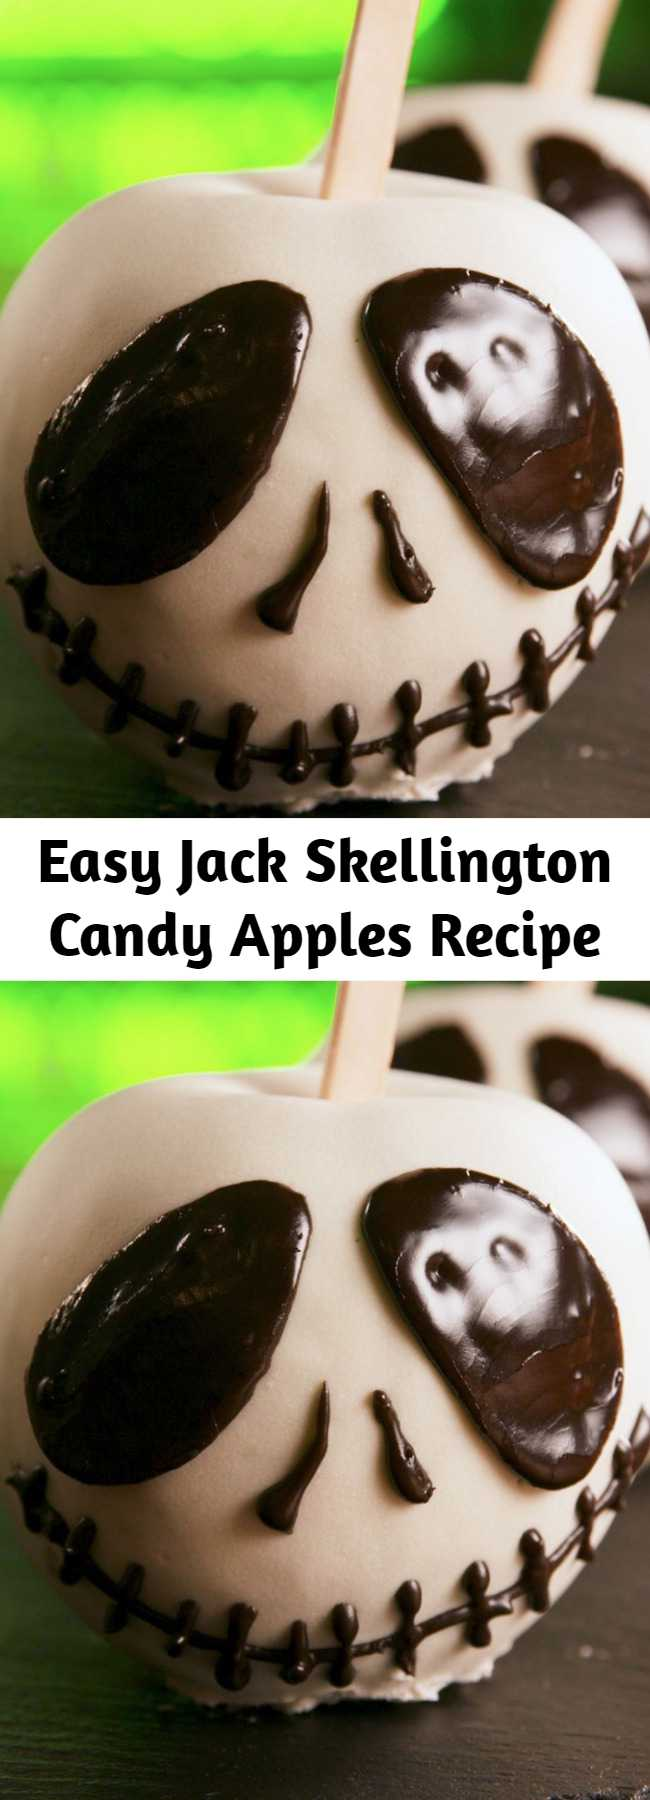 Easy Jack Skellington Candy Apples Recipe - Have a happy Halloween with these Jack Skellington Candy Apples.